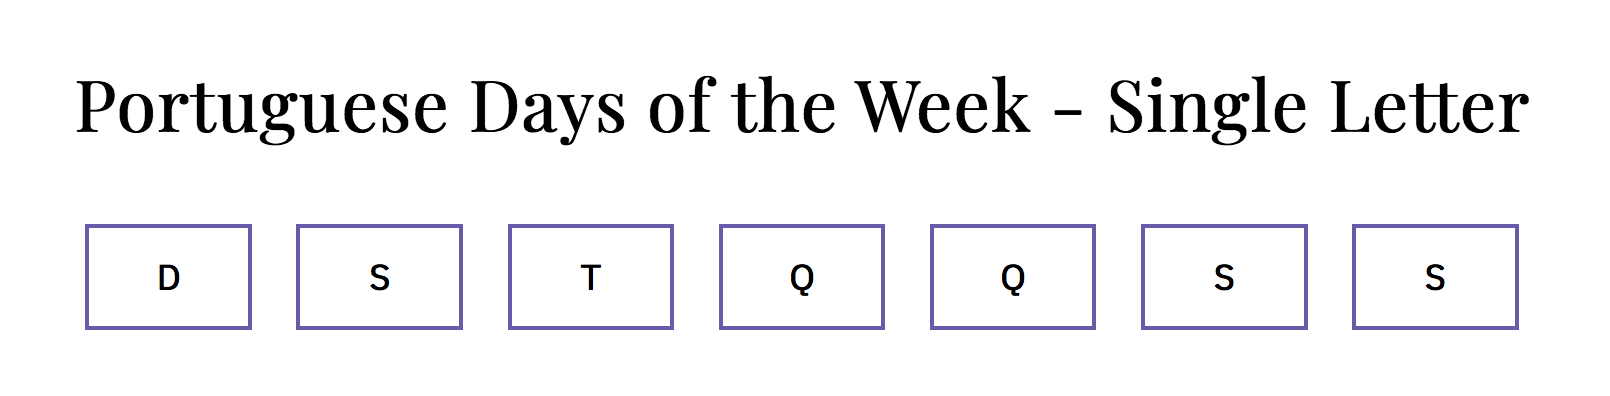 day of the week selector in Portuguese using narrow names